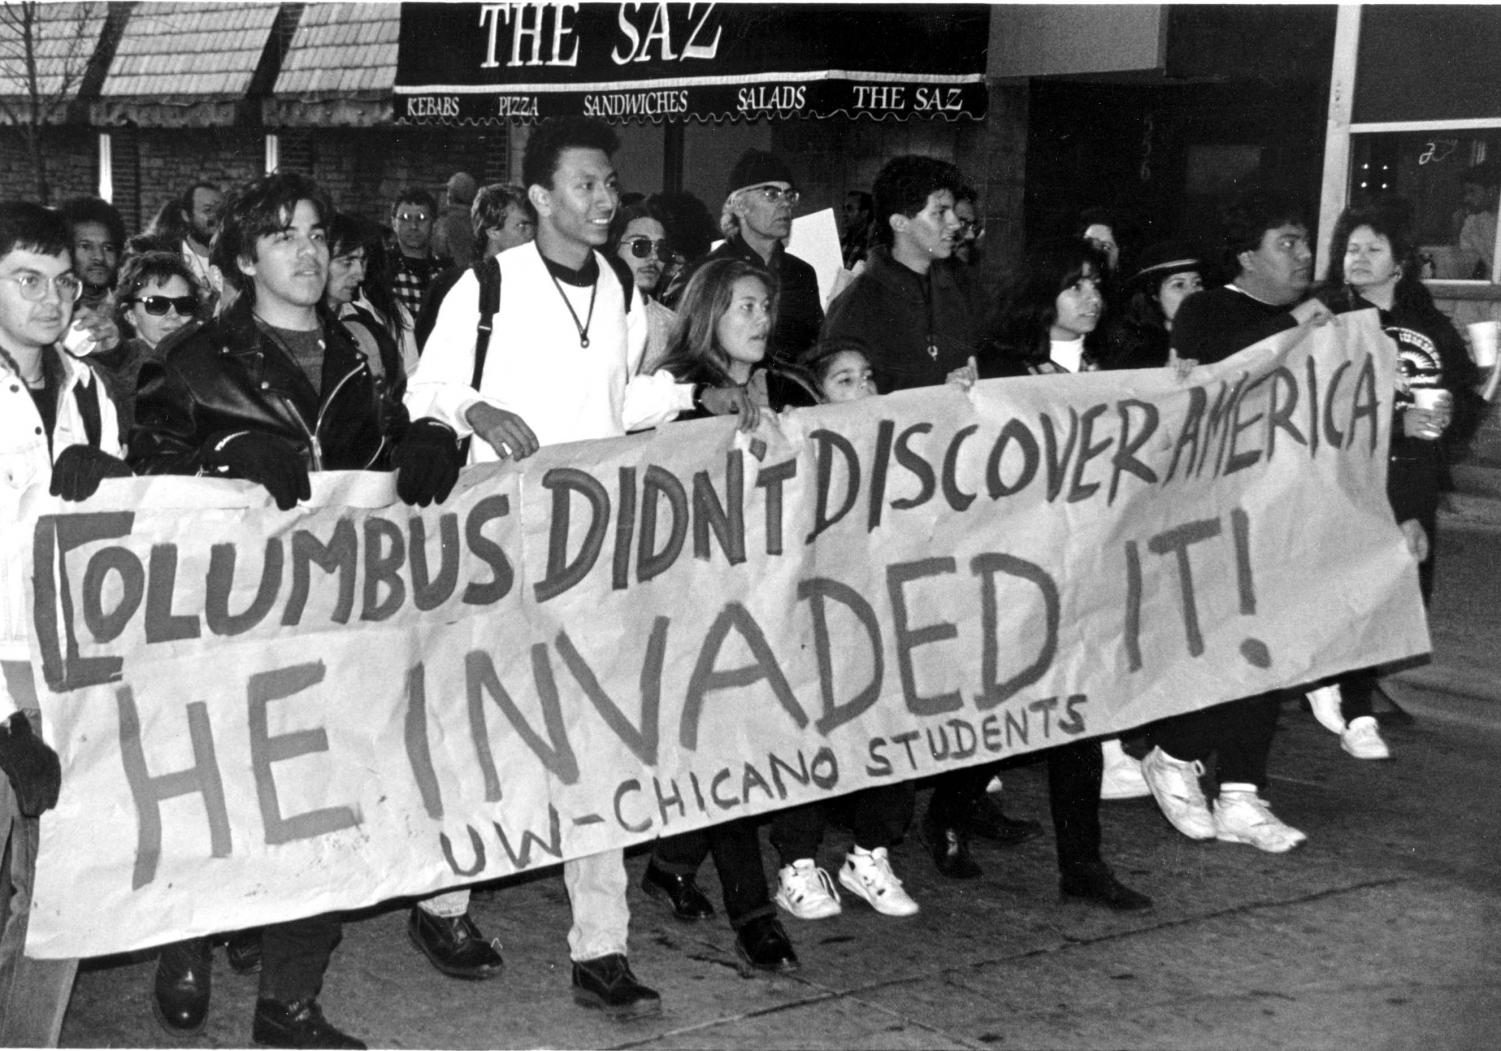 Some states have opted out of celebrating Columbus Day.